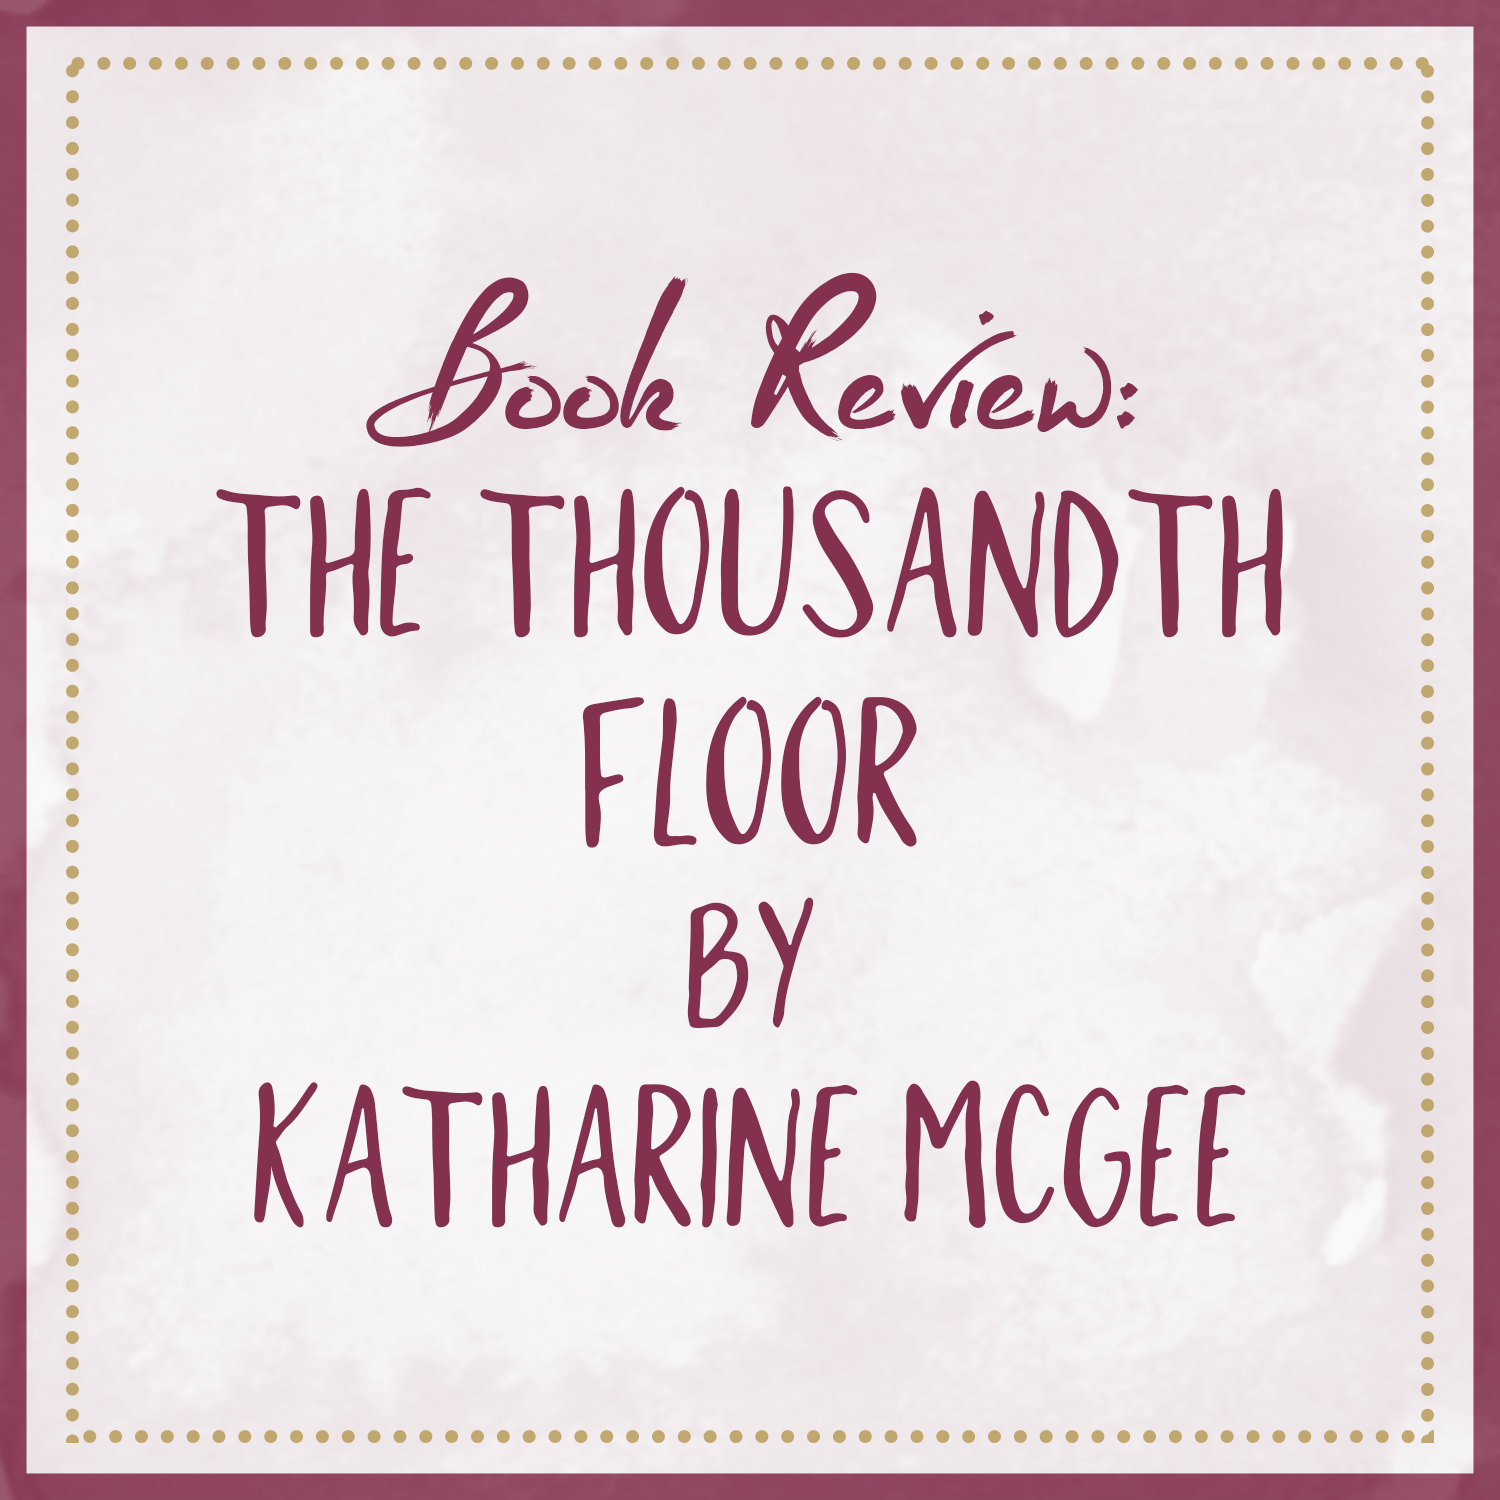 Book Review | The Thousandth Floor, by